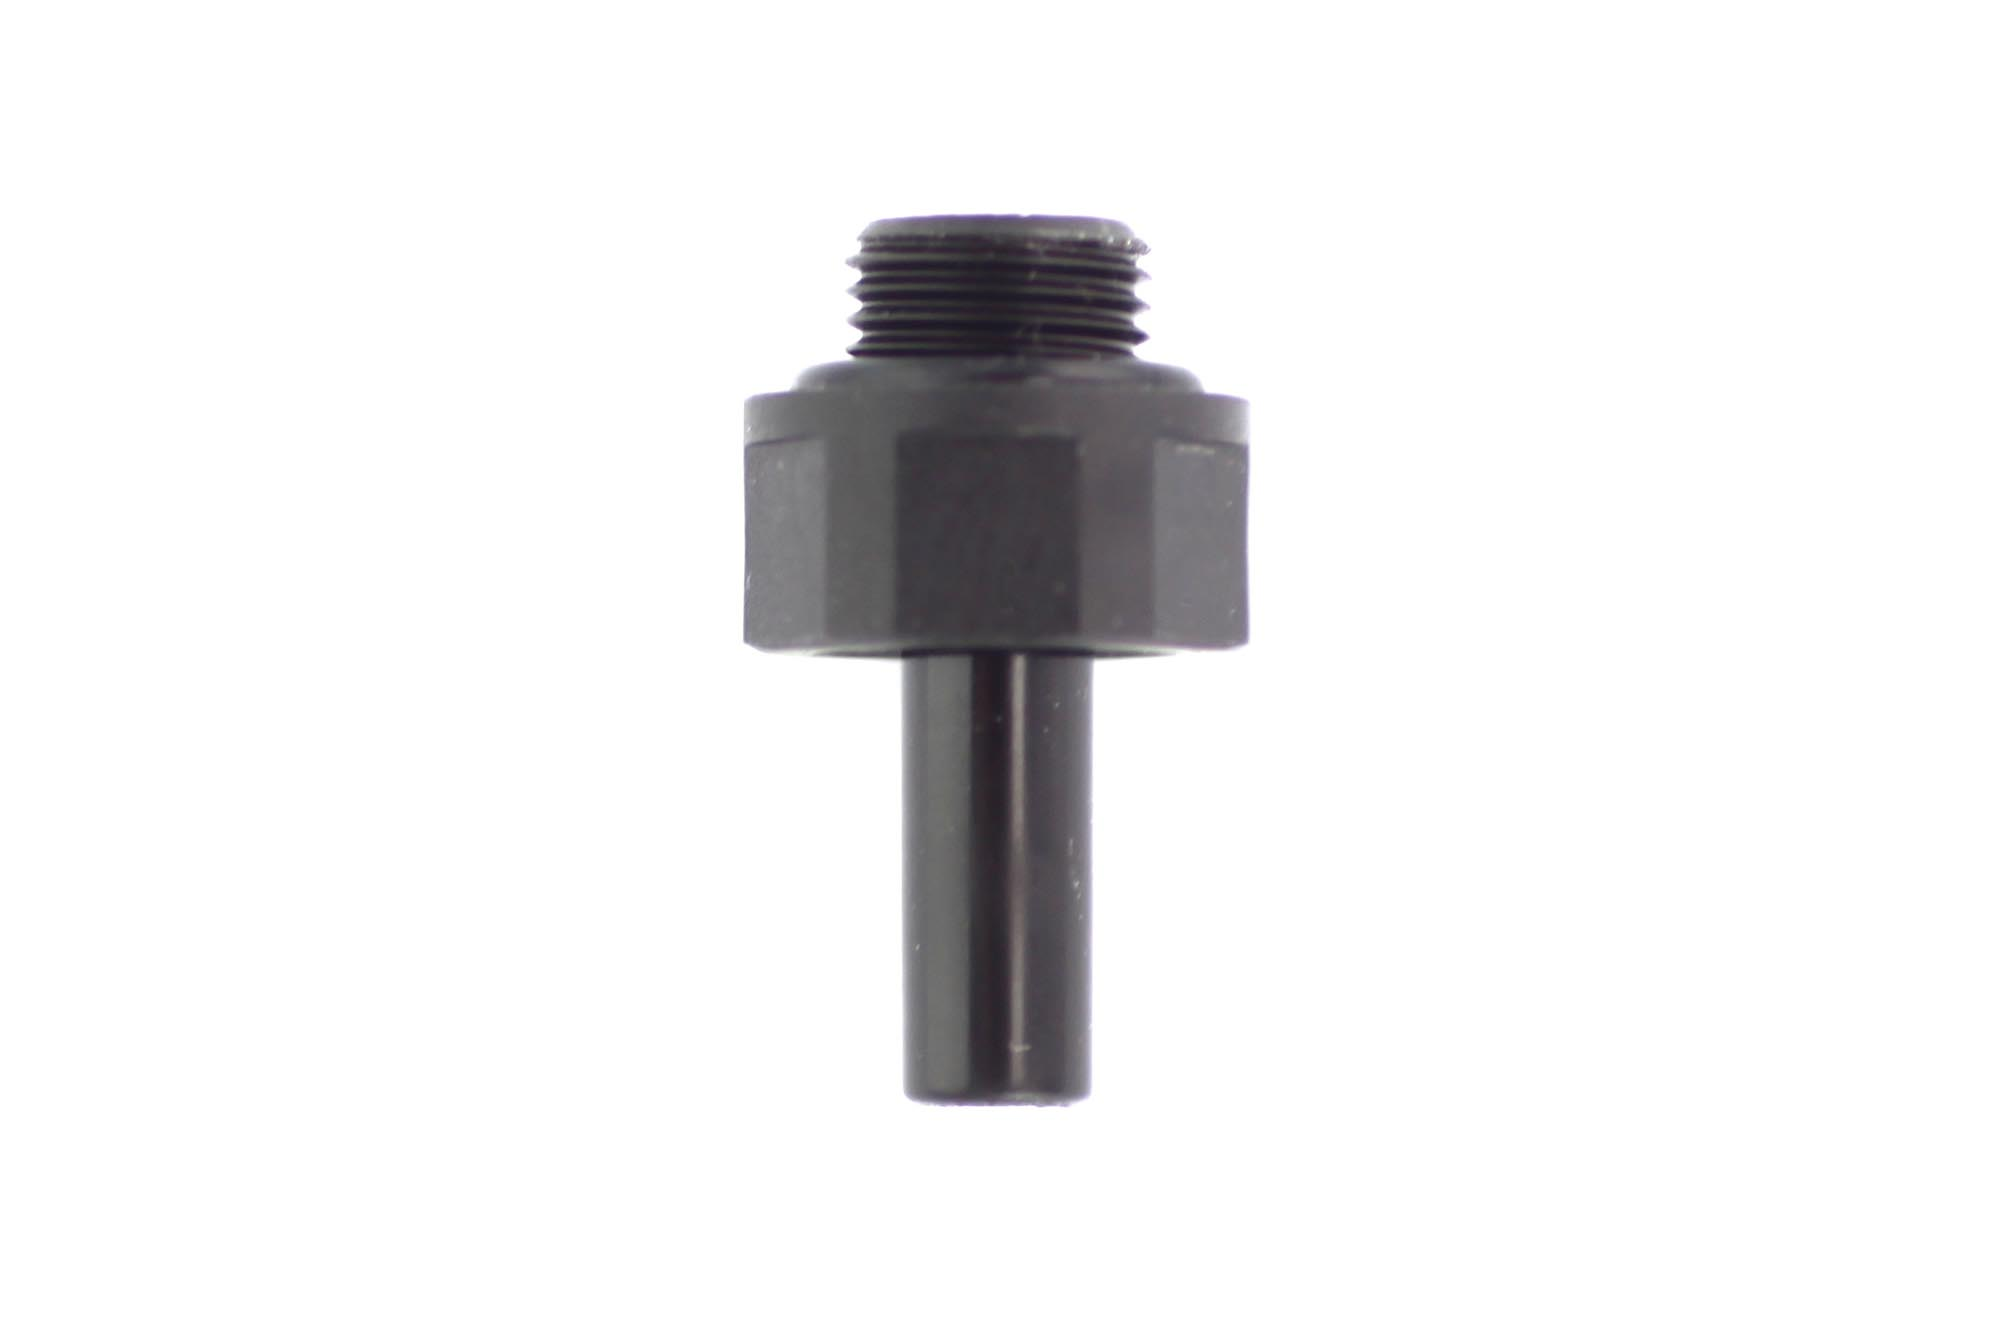 Pisco 4 / 6mm Bubble Counter Adapter